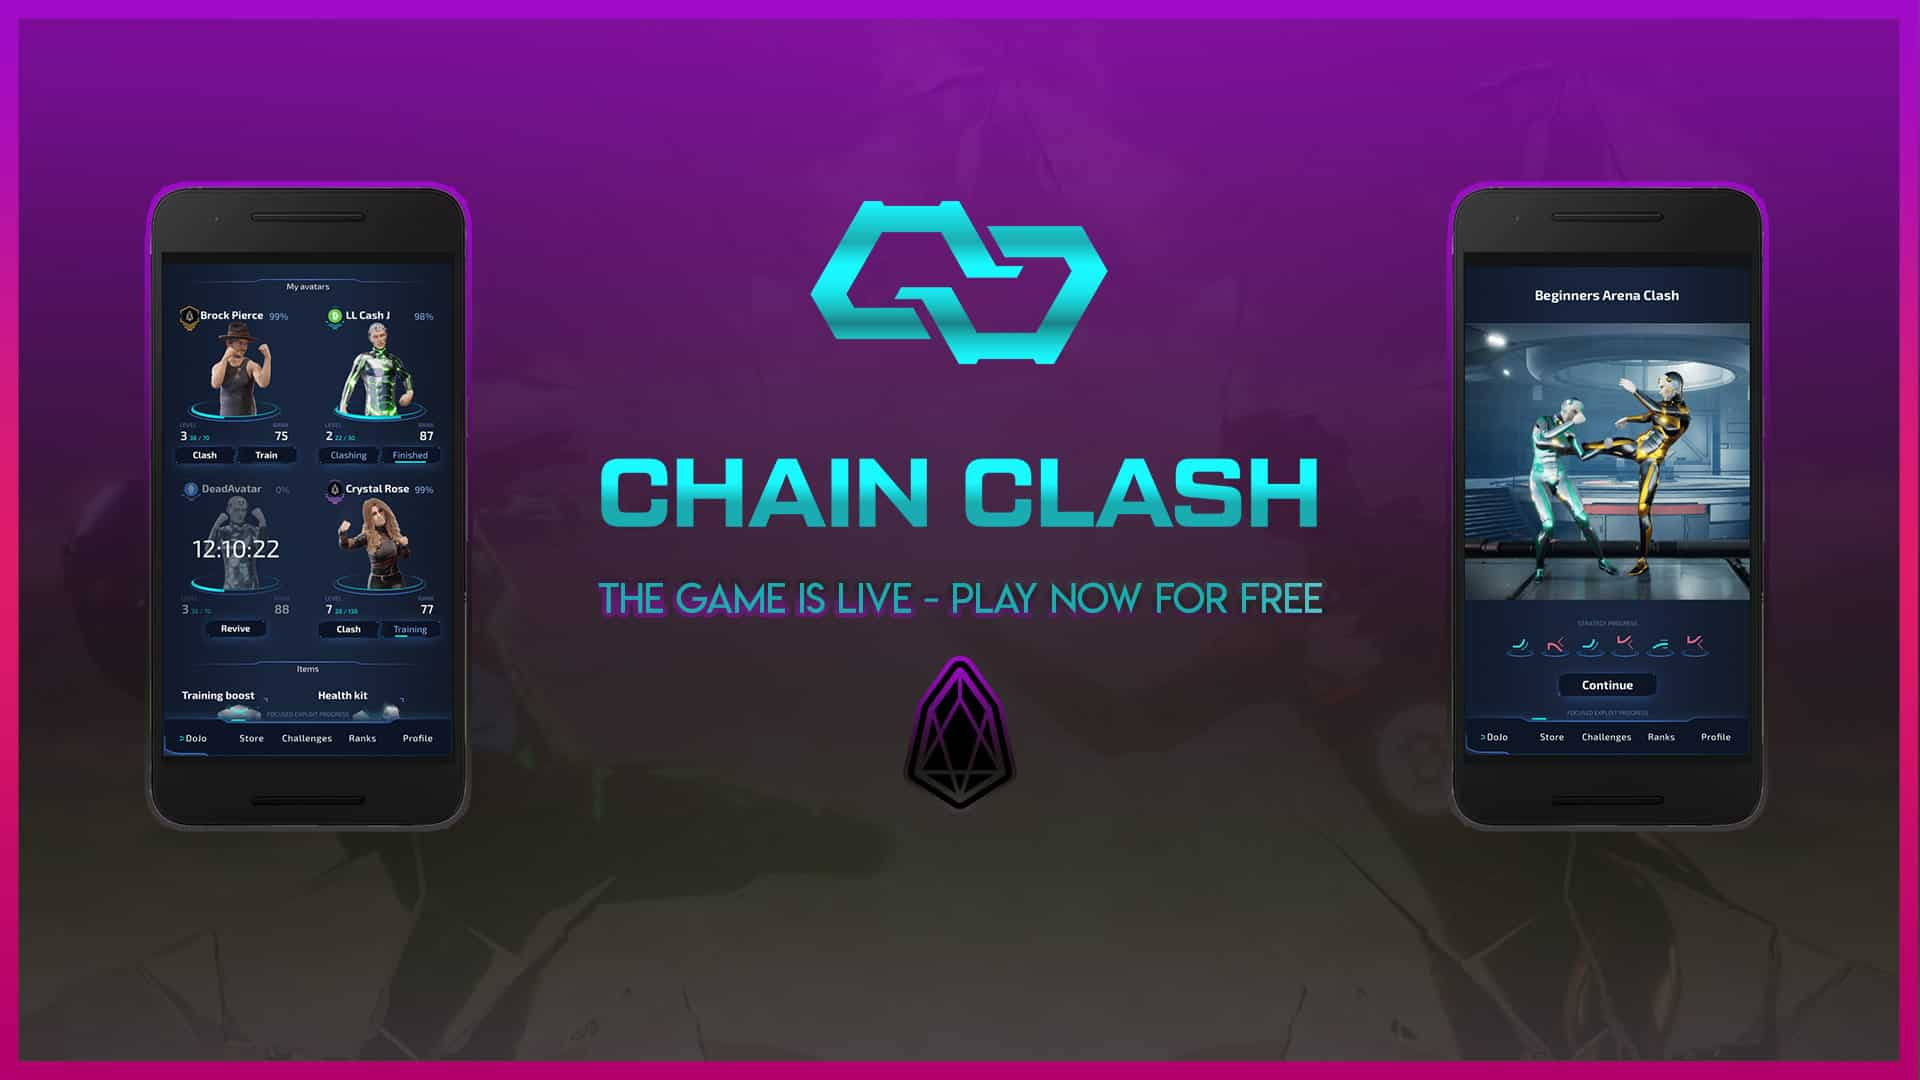 Chain Clash is live